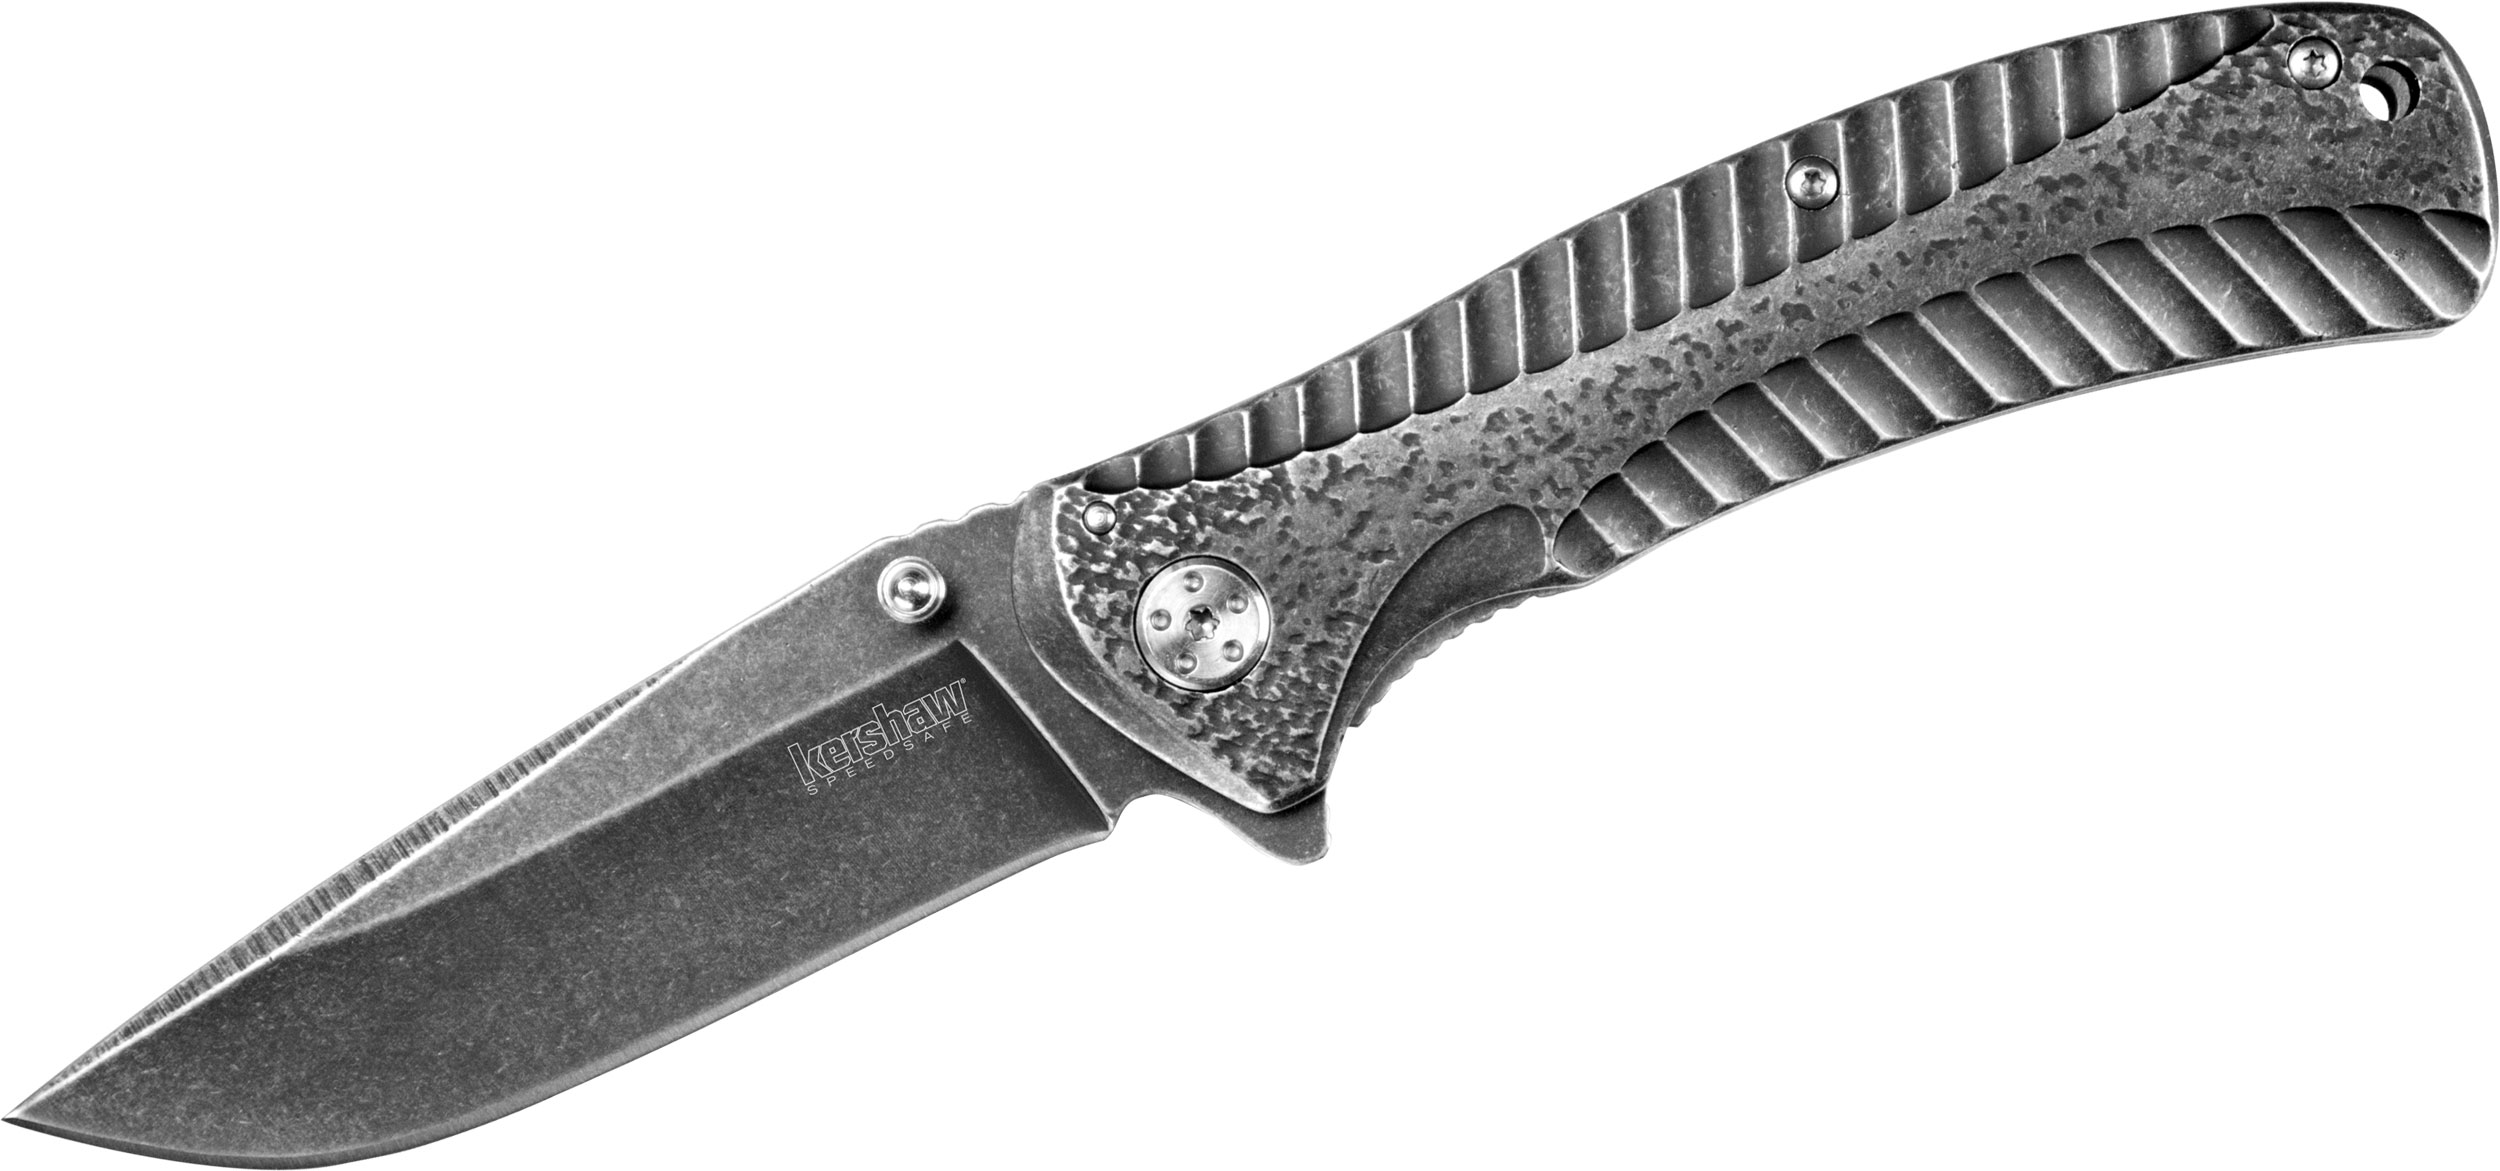 Kershaw 1301BW Starter Assisted Flipper Knife 3.4 inch Blackwash Plain Blade, Stainless Steel Handles